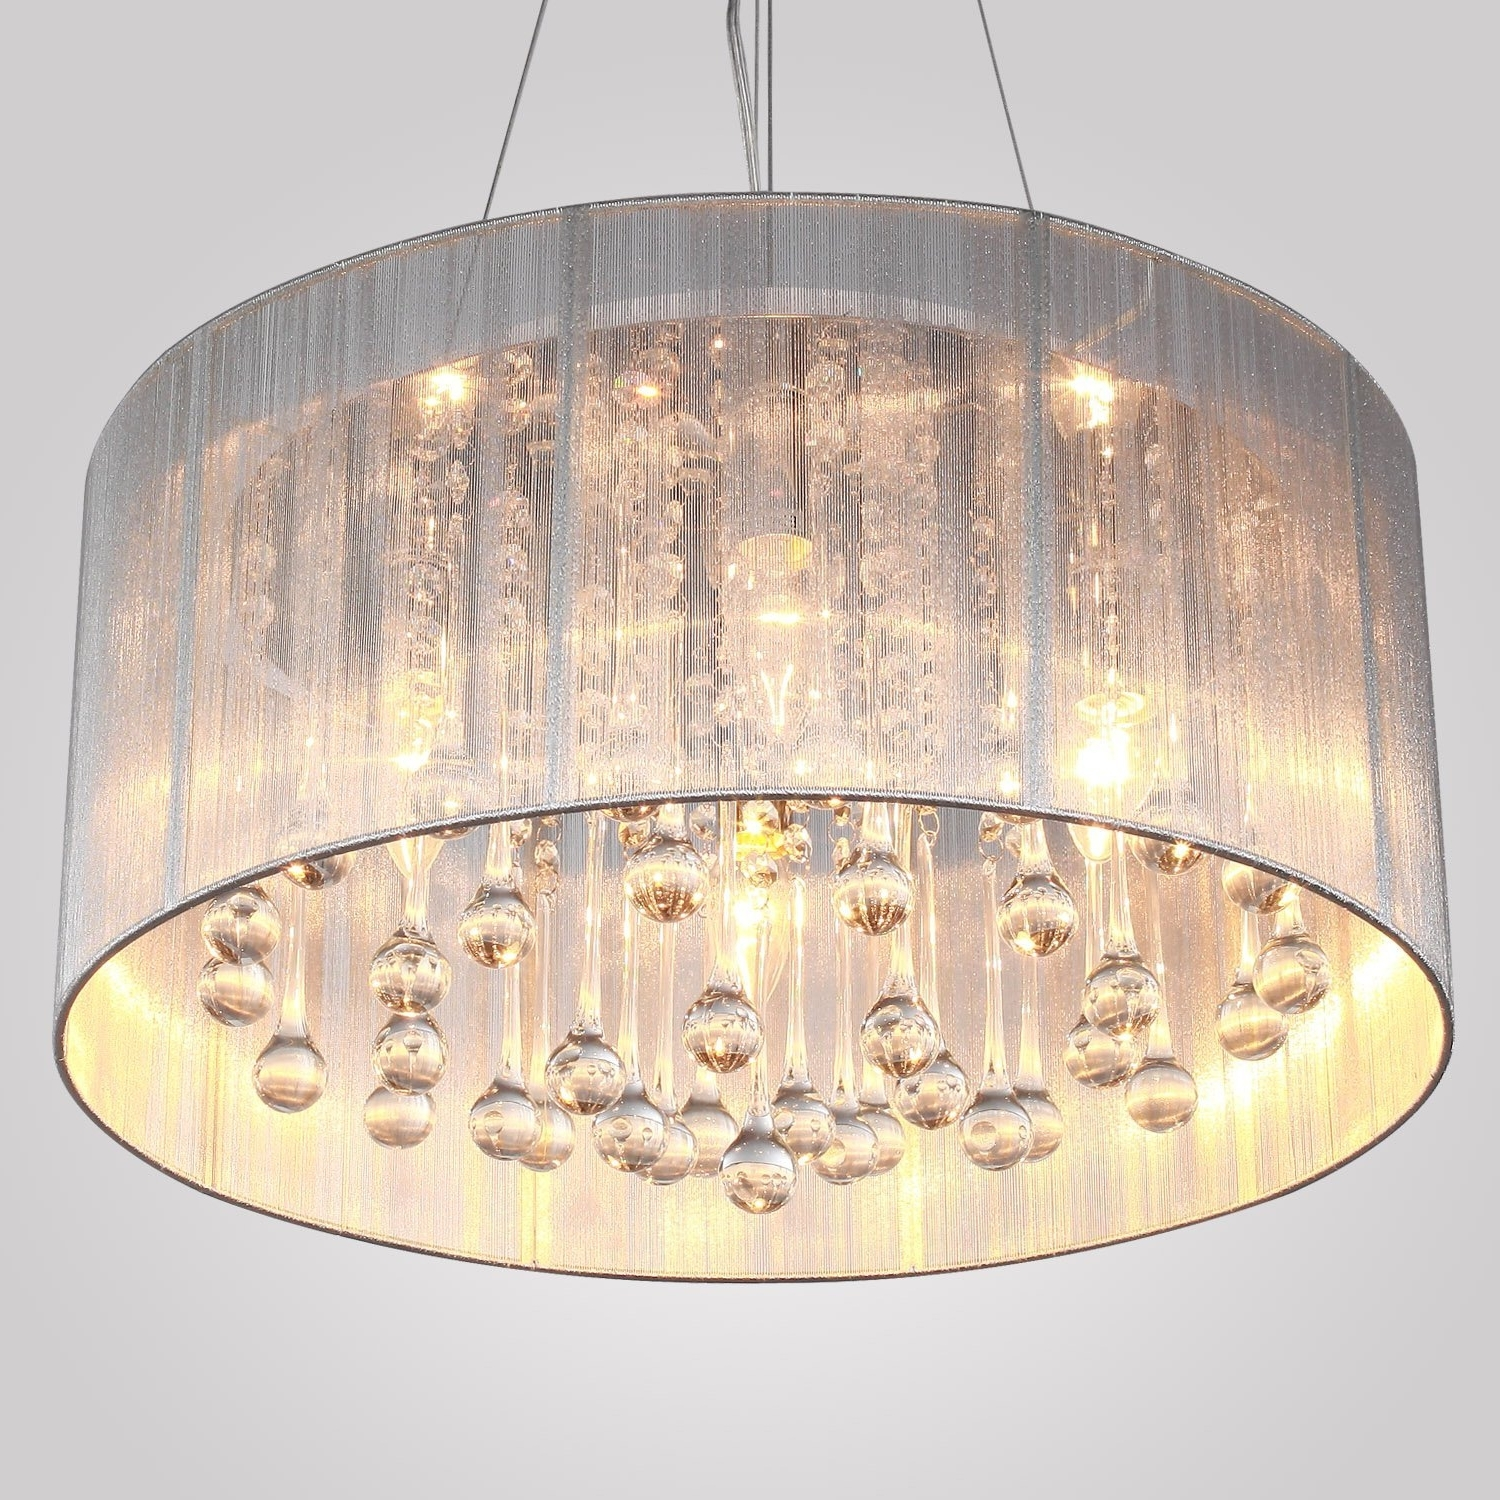 Widely Used Light Fixture : Drum Pendant Lighting Lowes Rectangular Flush Mount Inside Extra Large Chandelier Lighting (View 8 of 20)